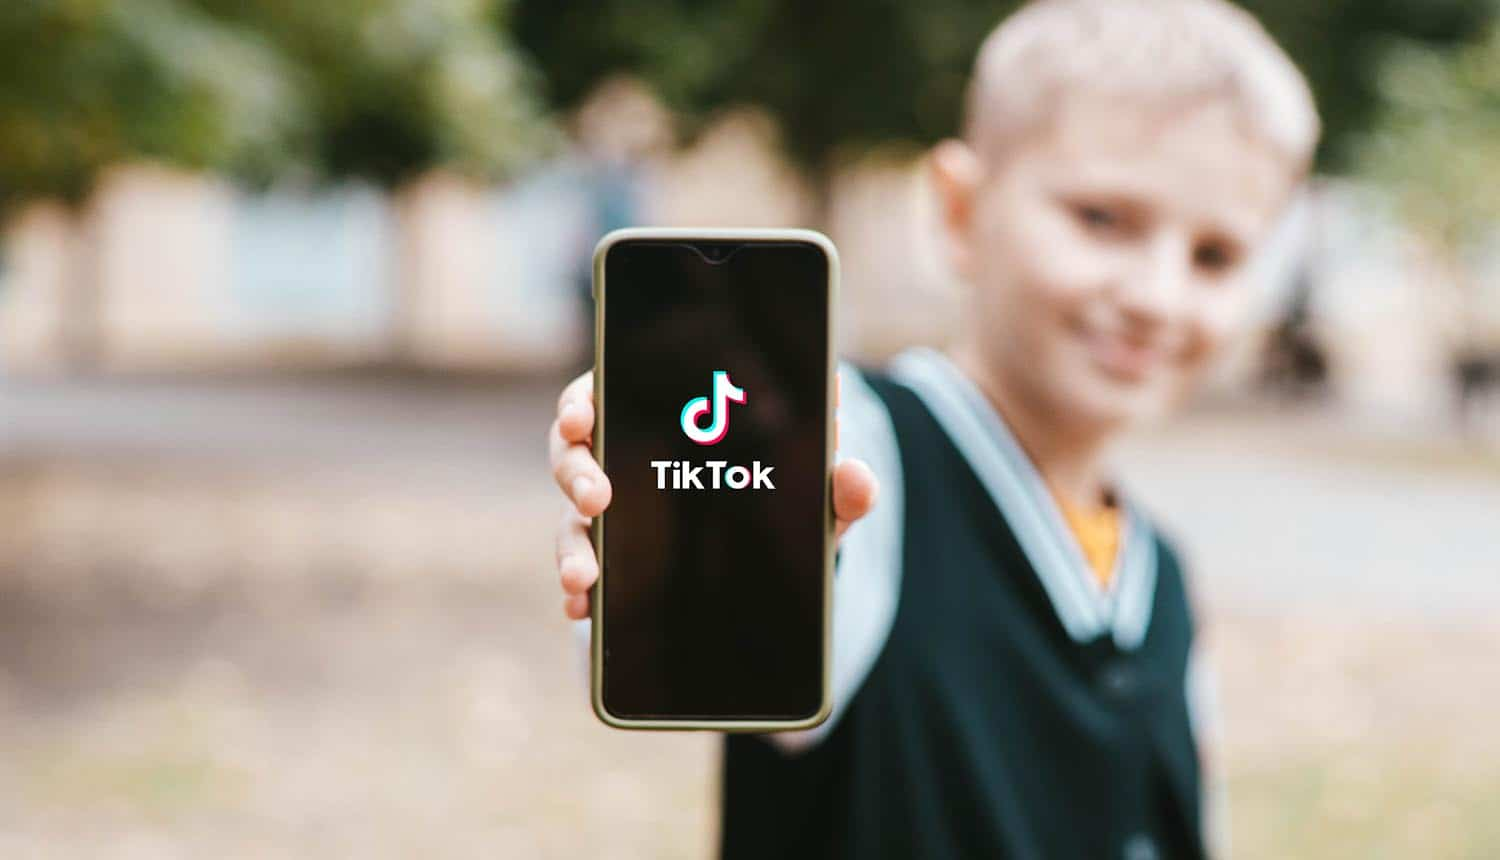 TikTok Child Privacy Lawsuit Alleges Misuse of Personal Data of Millions of Minors